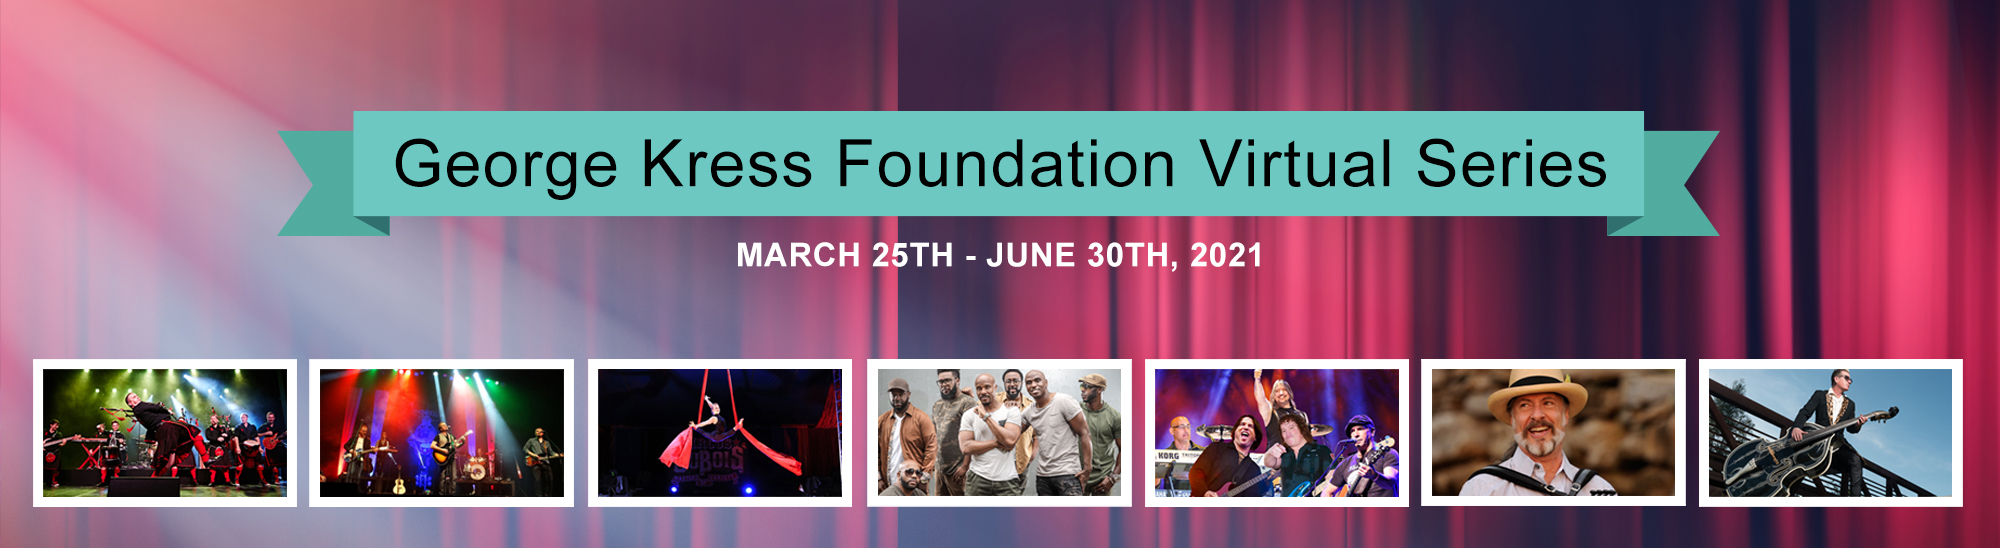 george-kress-foundation-virtual-series